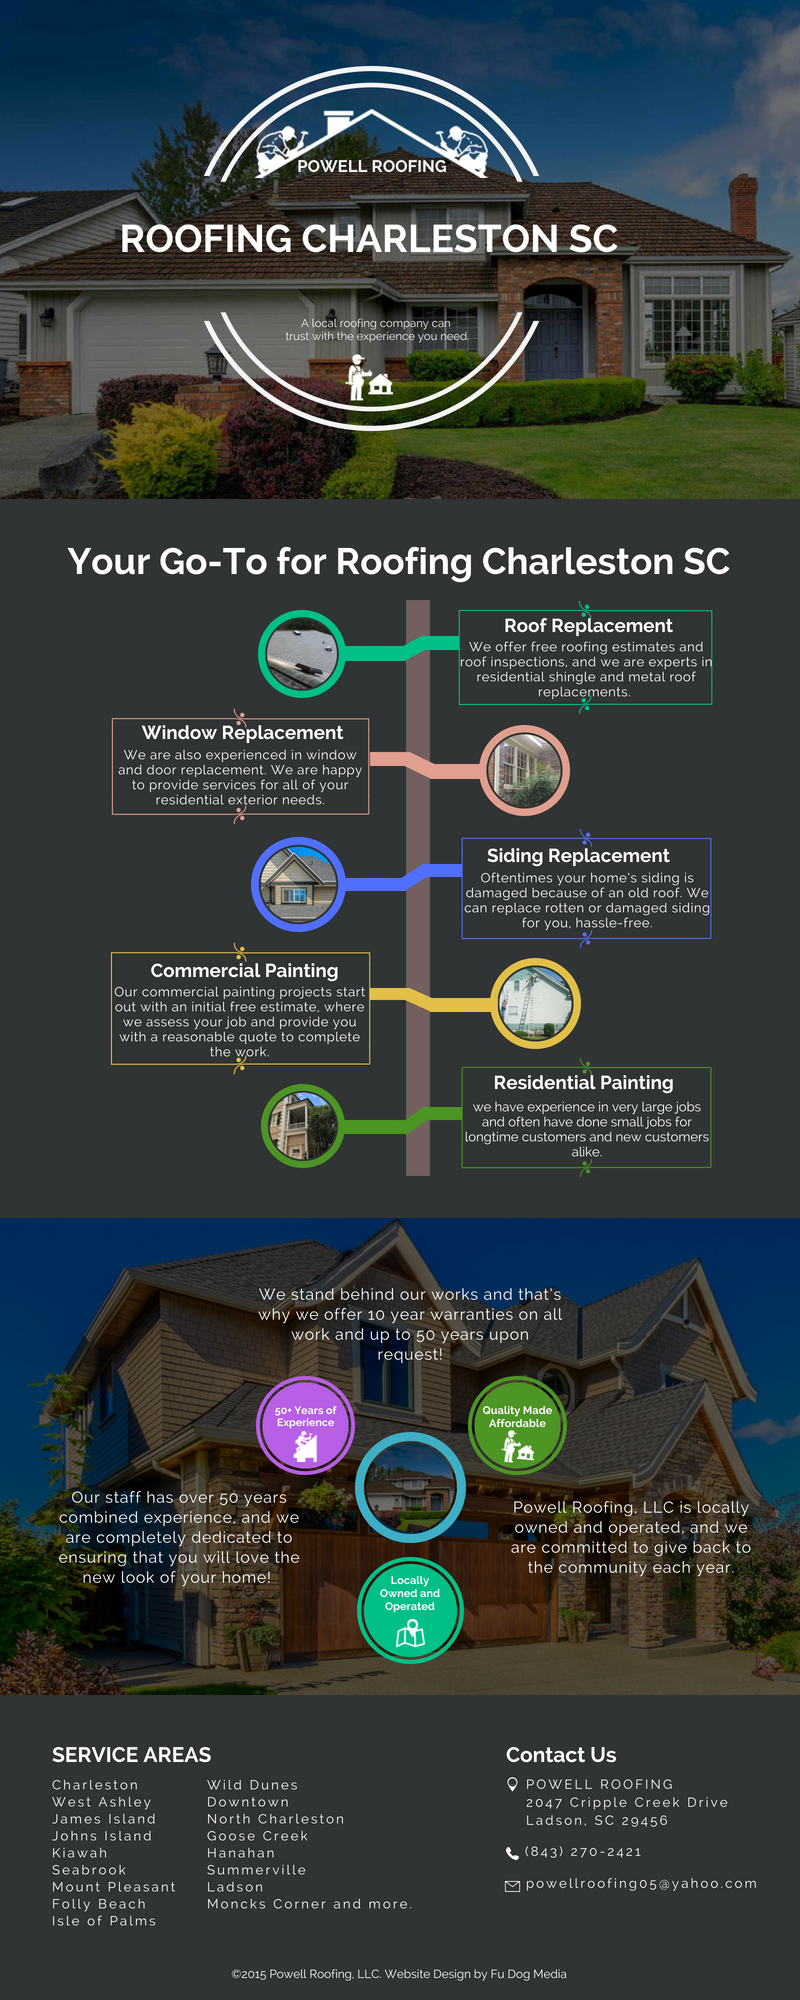 Powell Roofing Provides You The Best Roofing Services In Charleston Sc We Ve Got The Best Contractors For The Purpo Roof Installation Roofing Roofing Services